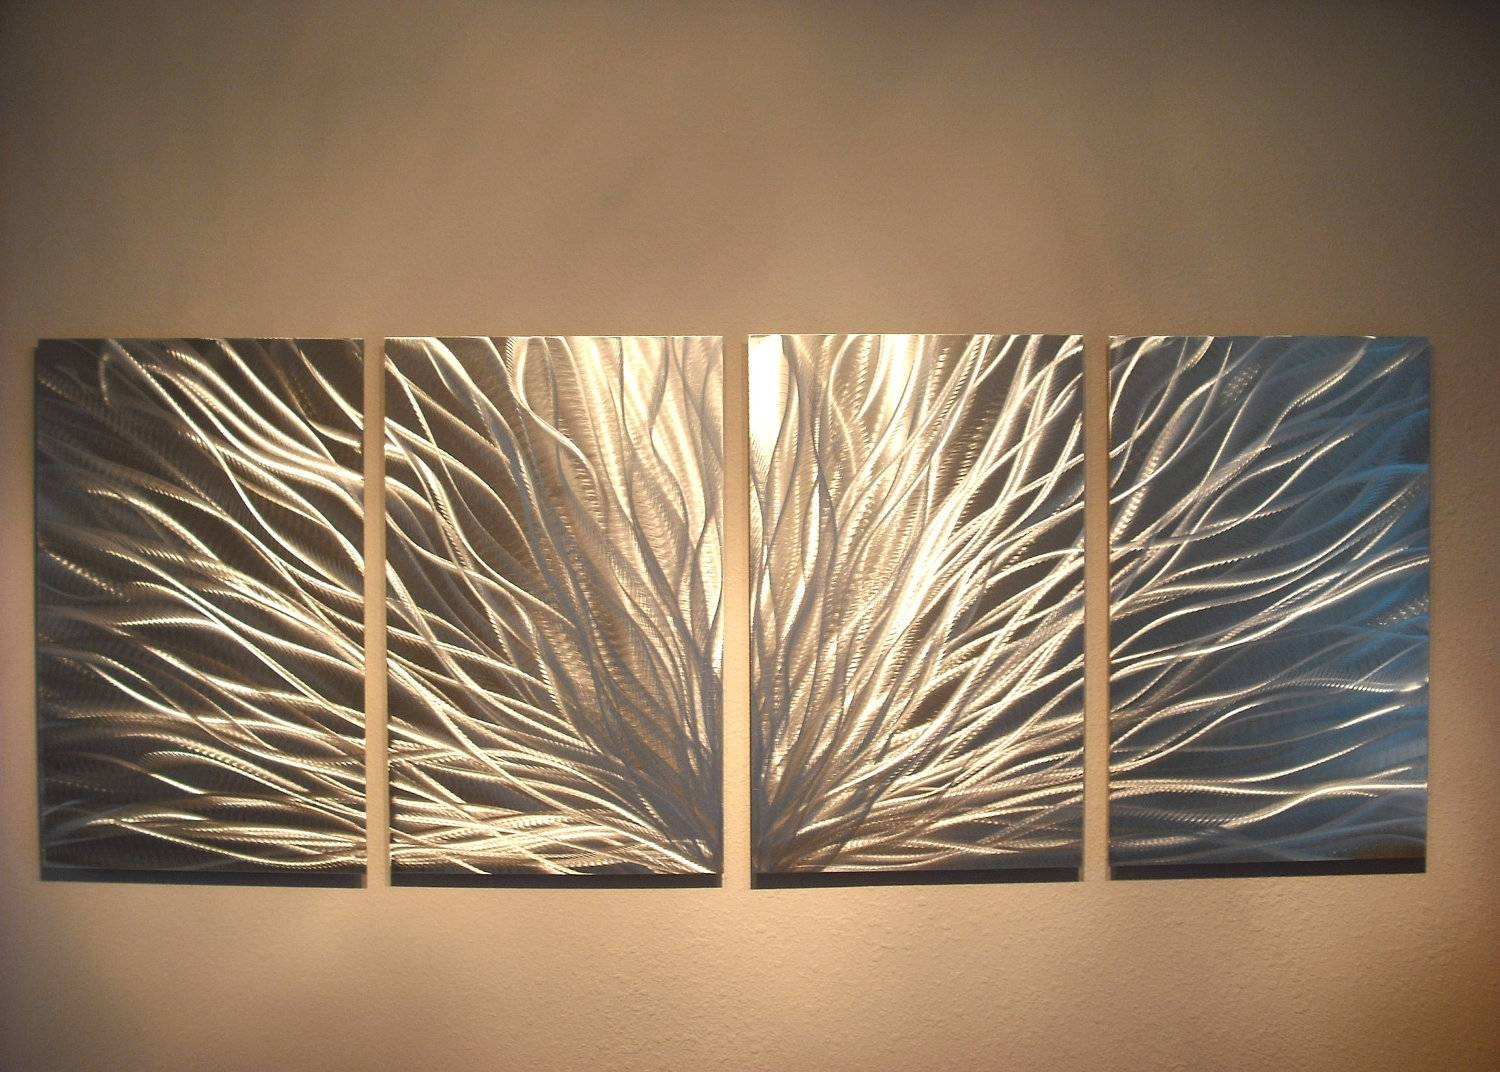 Radiance – Abstract Metal Wall Art Contemporary Modern Decor With Regard To Most Popular Cheap Large Metal Wall Art (View 3 of 20)